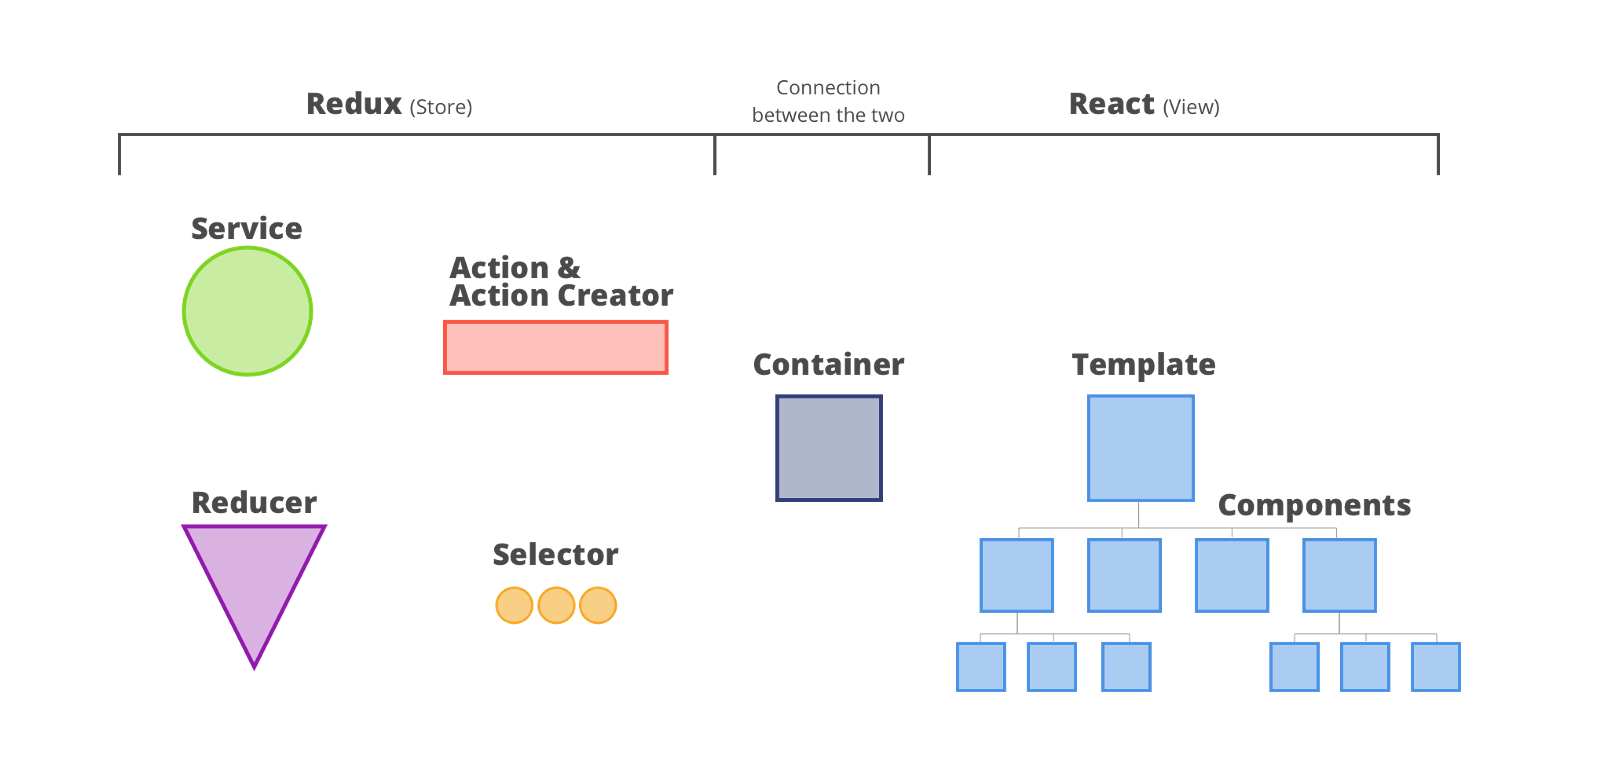 React redux architecture overview the musings of colt pini the overall architecture for react redux pooptronica Gallery